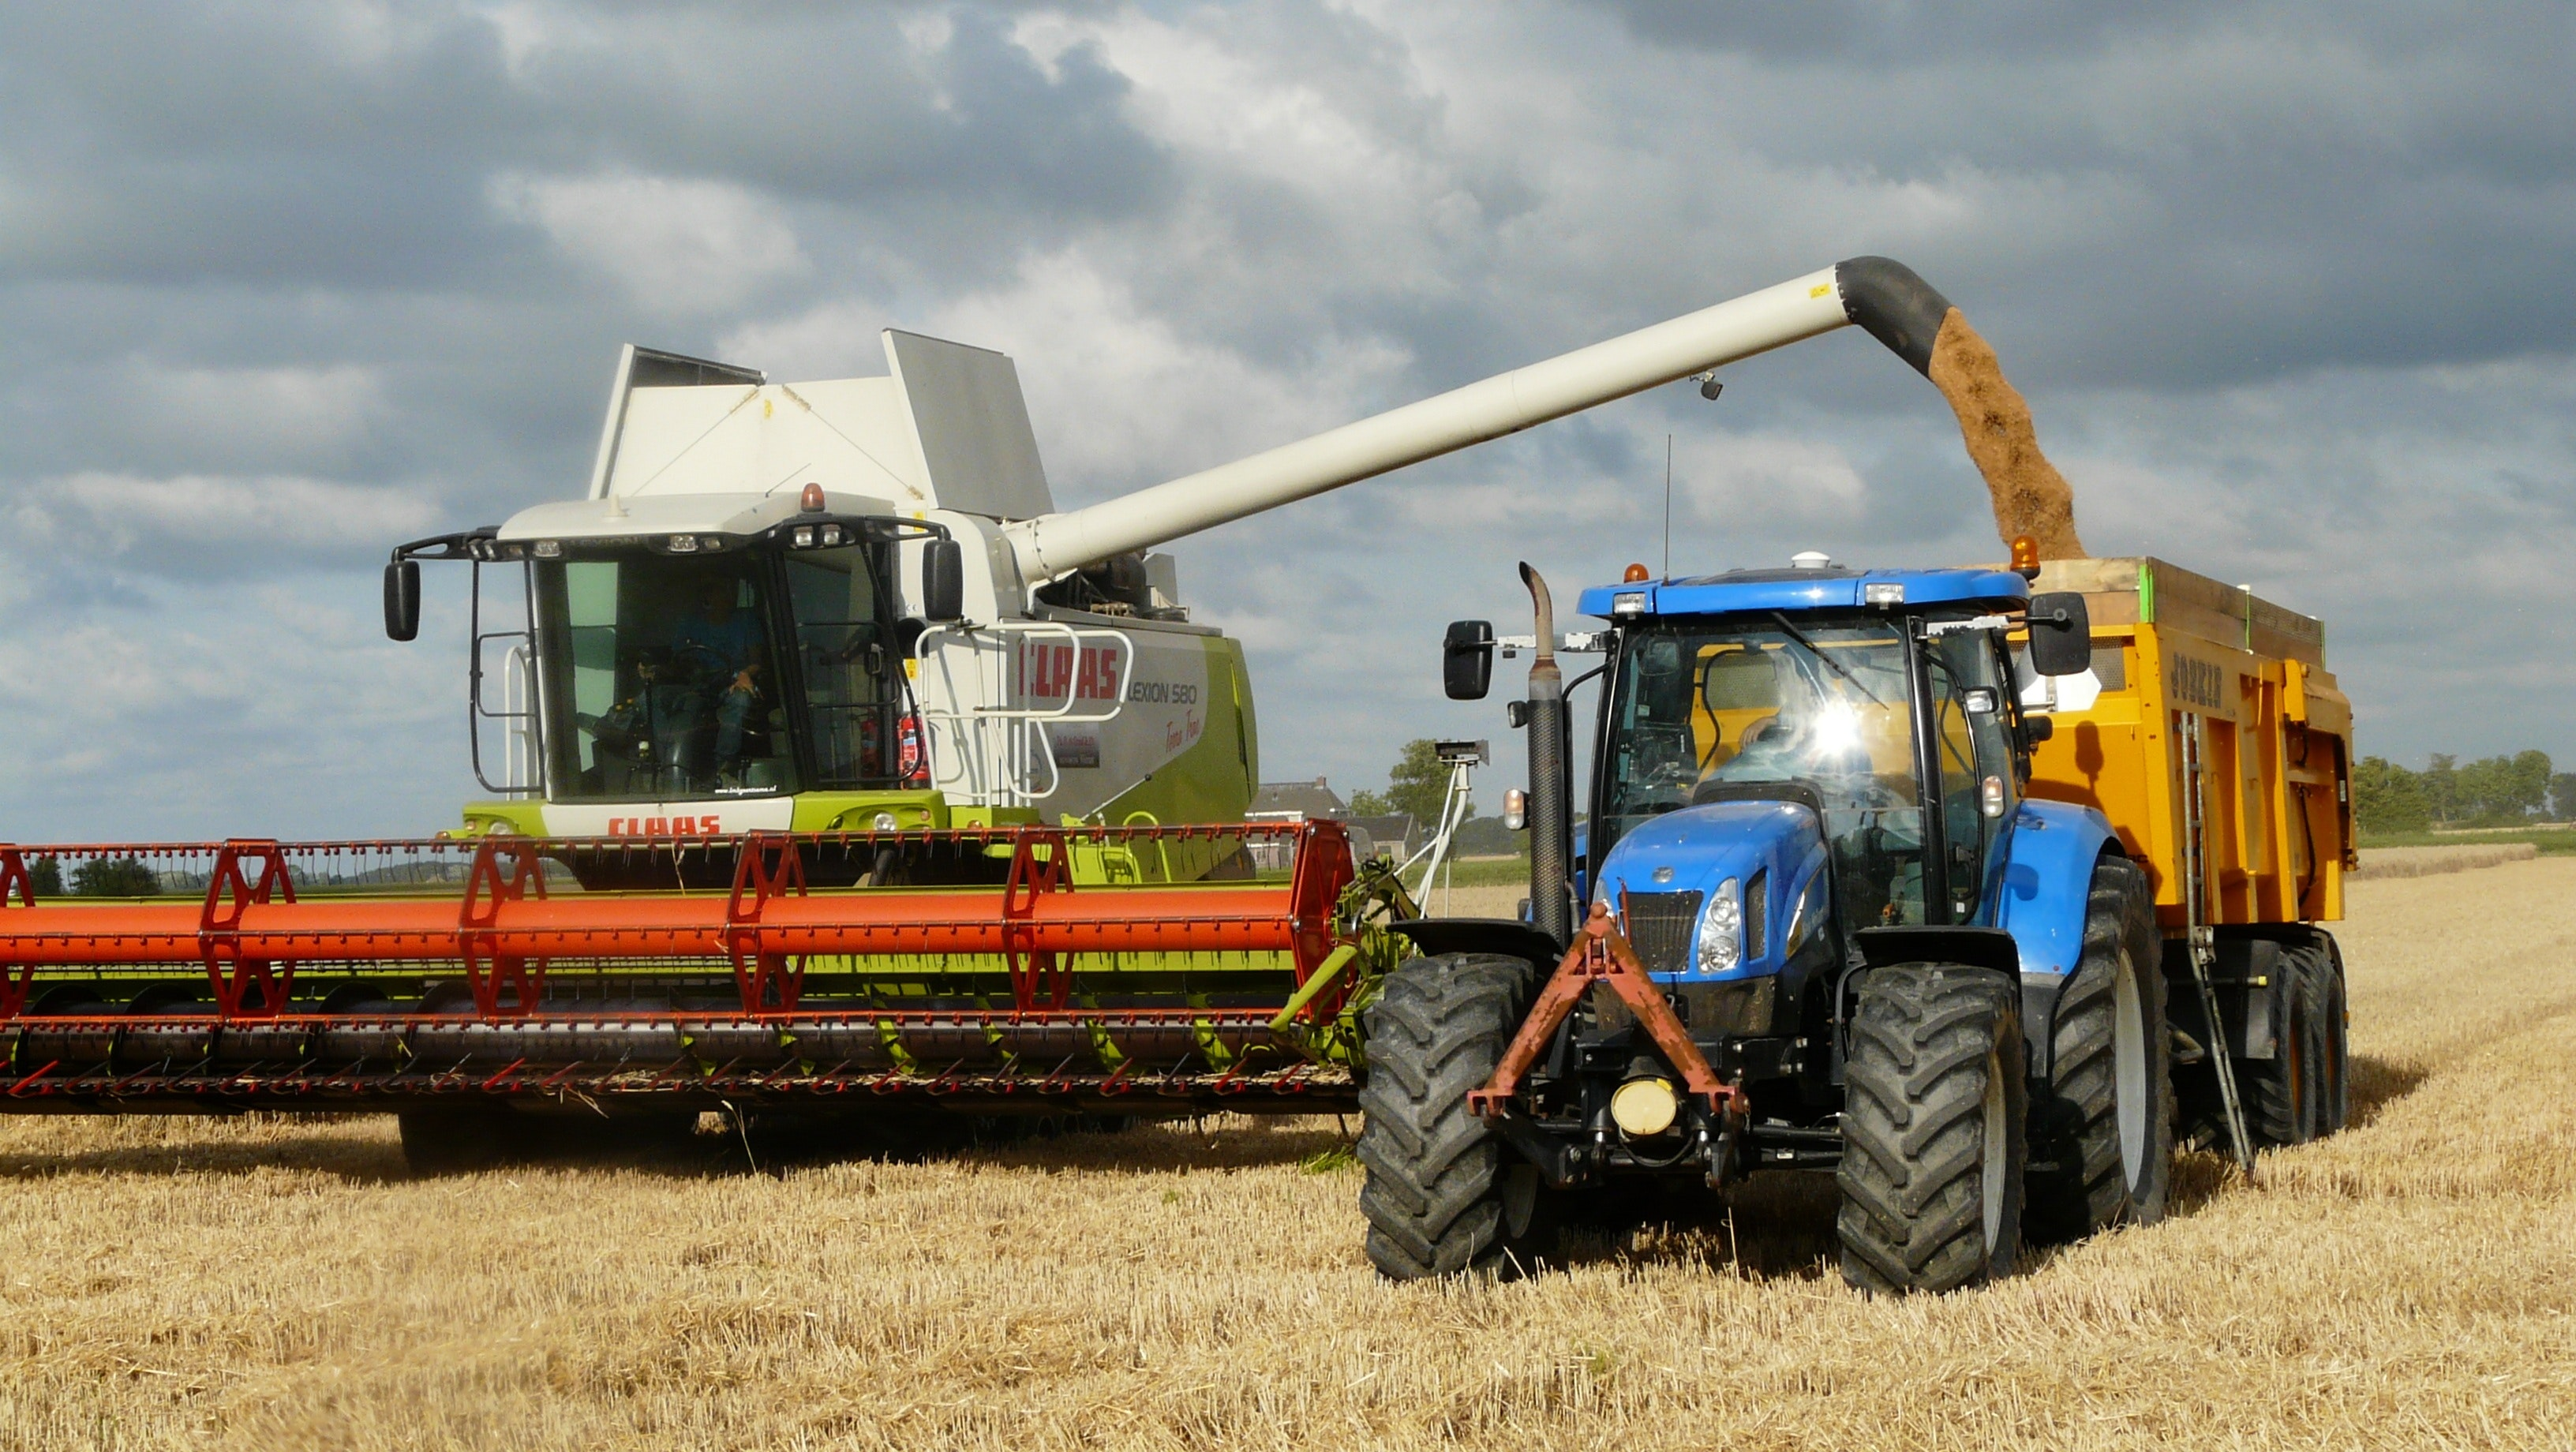 Blue Tractor Next to White Farm Vehicle at Daytime, Agriculture, Farm, Field, Grain, HQ Photo